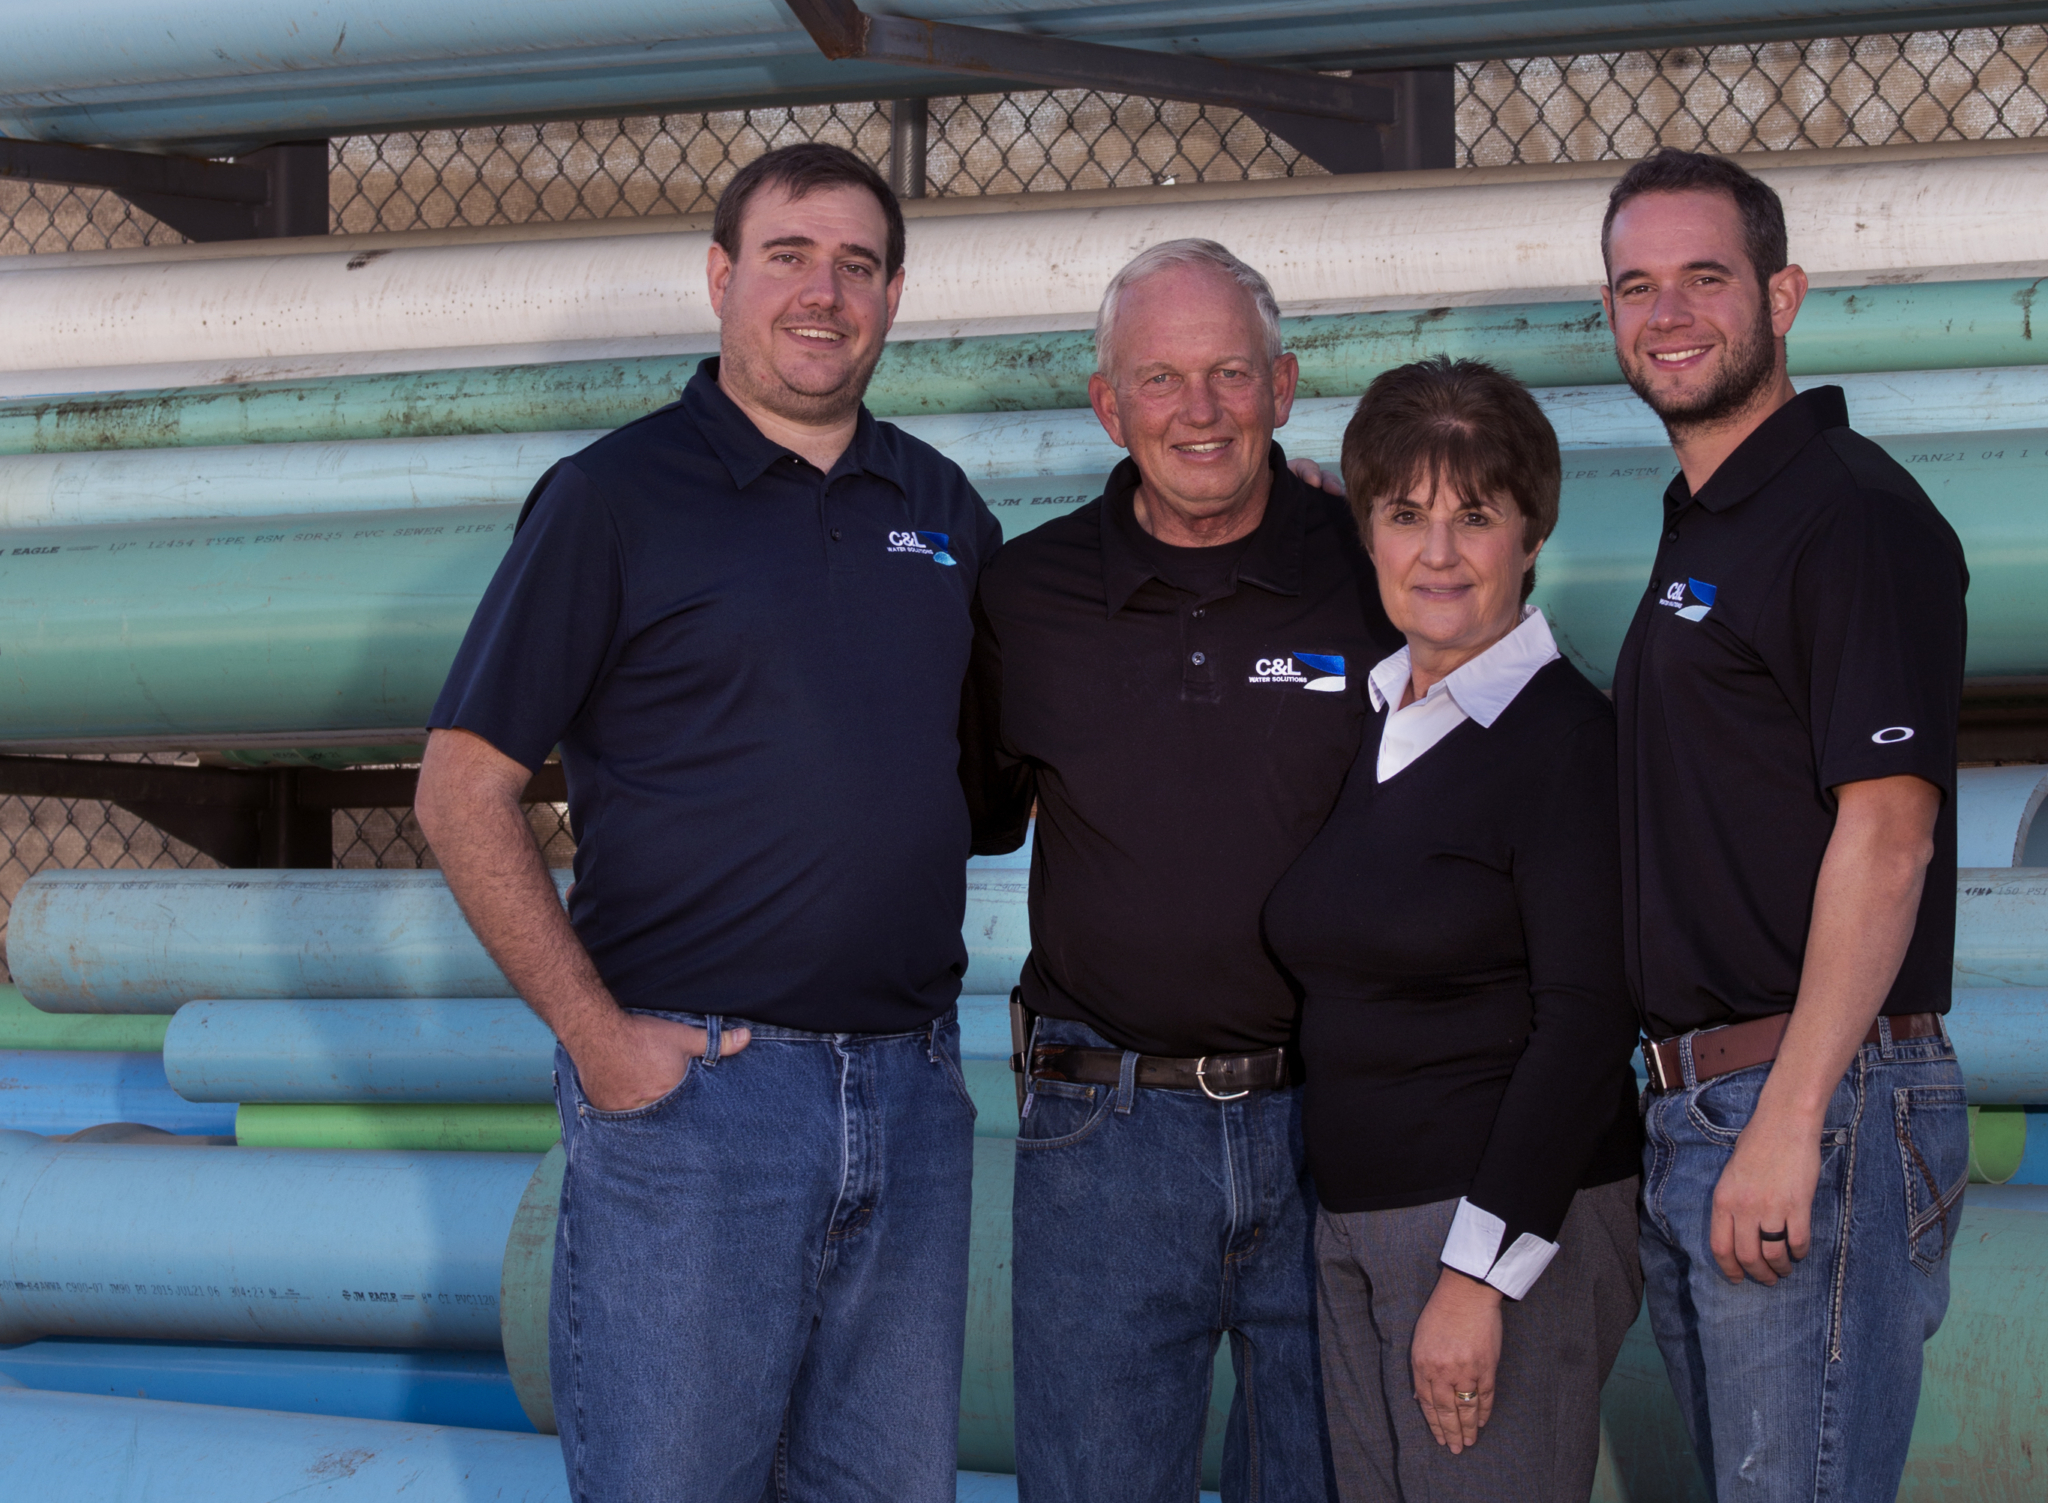 Larry and Chrystalla Larson (middle), founders of C&L Water Solutions in Littleton, Colorado, alongside sons Jason and Chris, who now run the company.